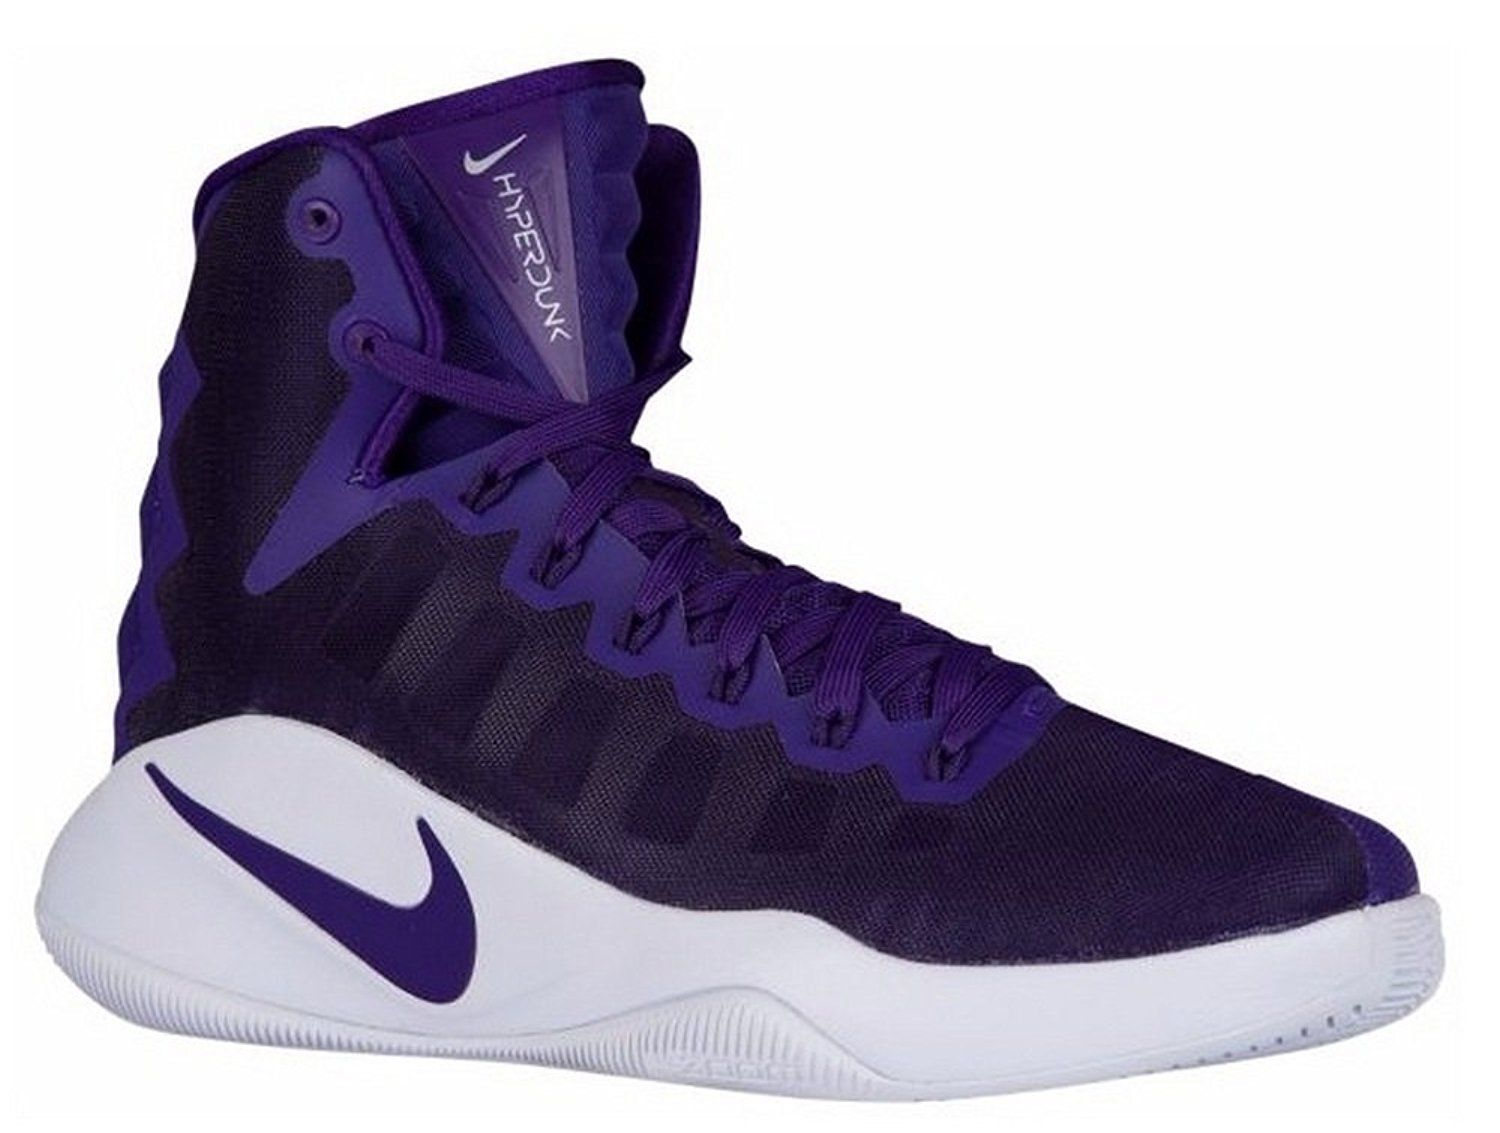 New Nike Women's Hyperdunk 2016 TB Basketball Shoes 844391 551 Purple Size  8 ** Review